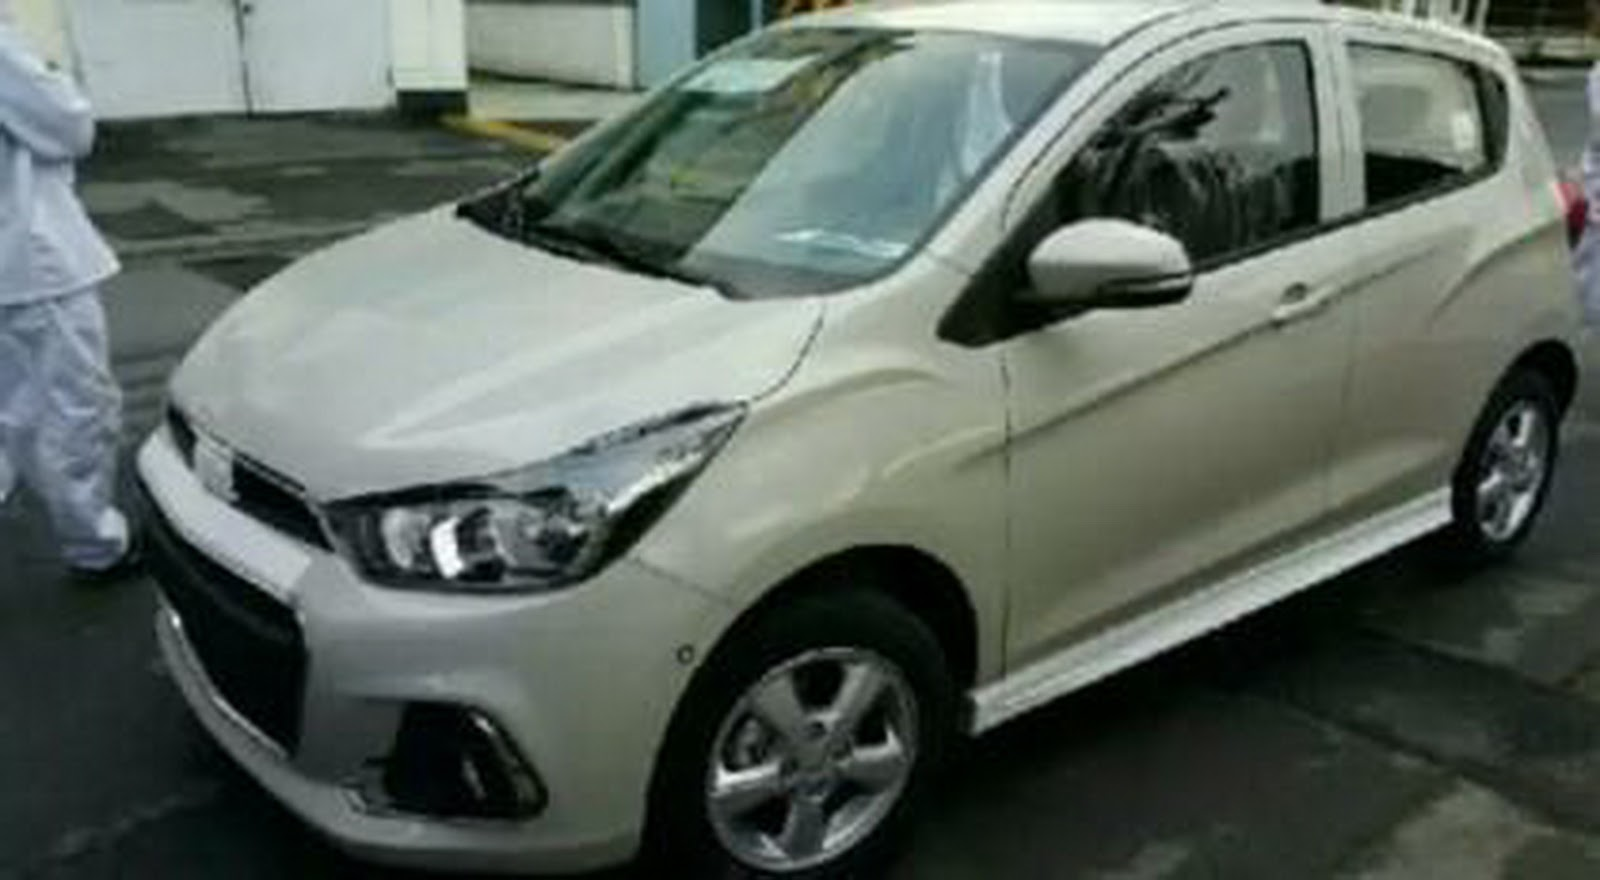 2017 Chevrolet Spark: Photos Of Updated Minicar Leaked In Korea